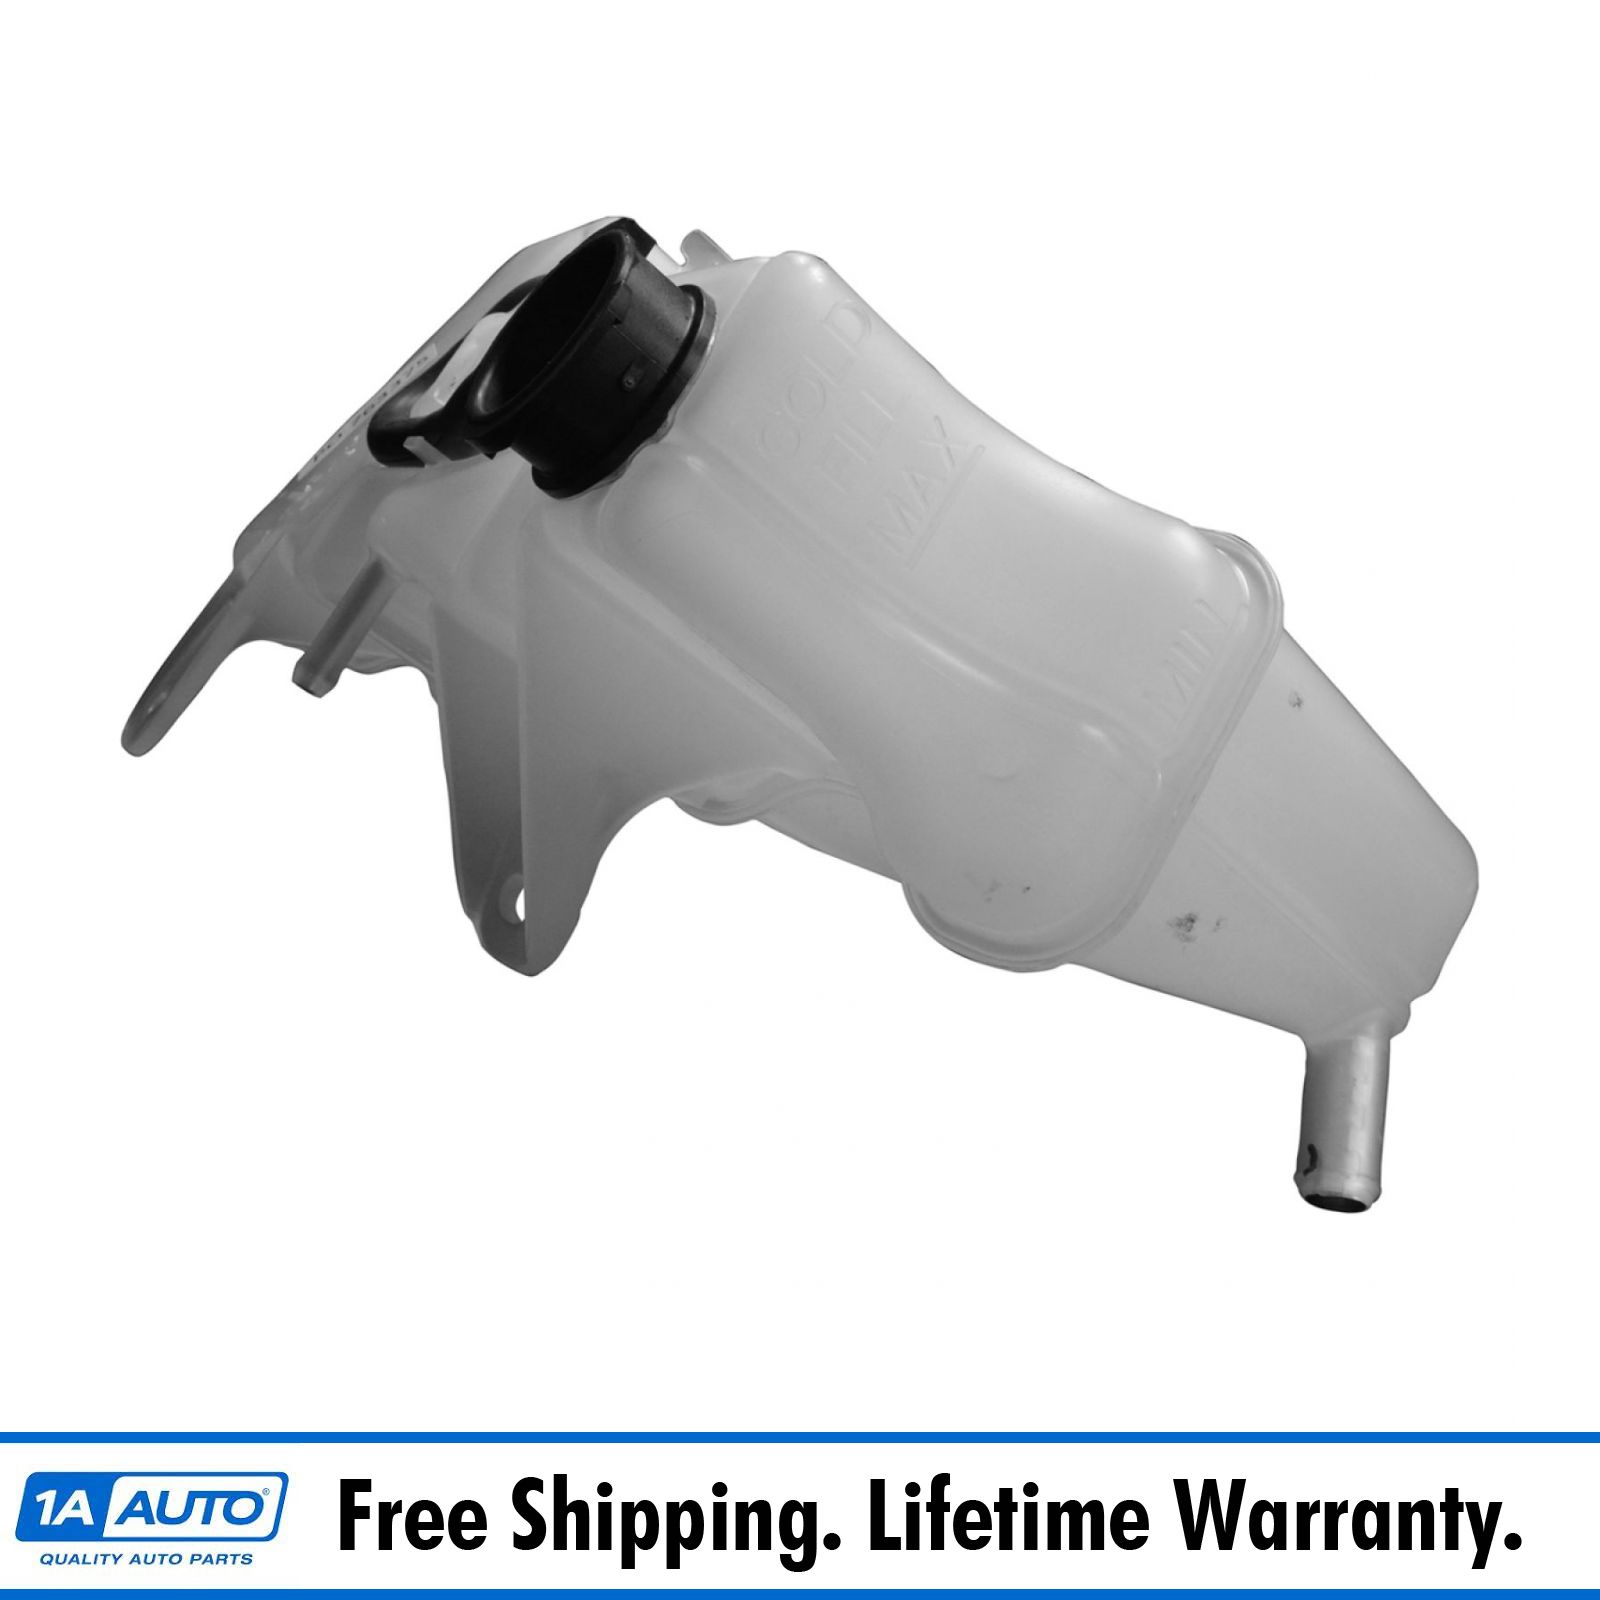 OEM 4596466AG Radiator Coolant Recovery Tank Reservoir for Chrysler Dodge New